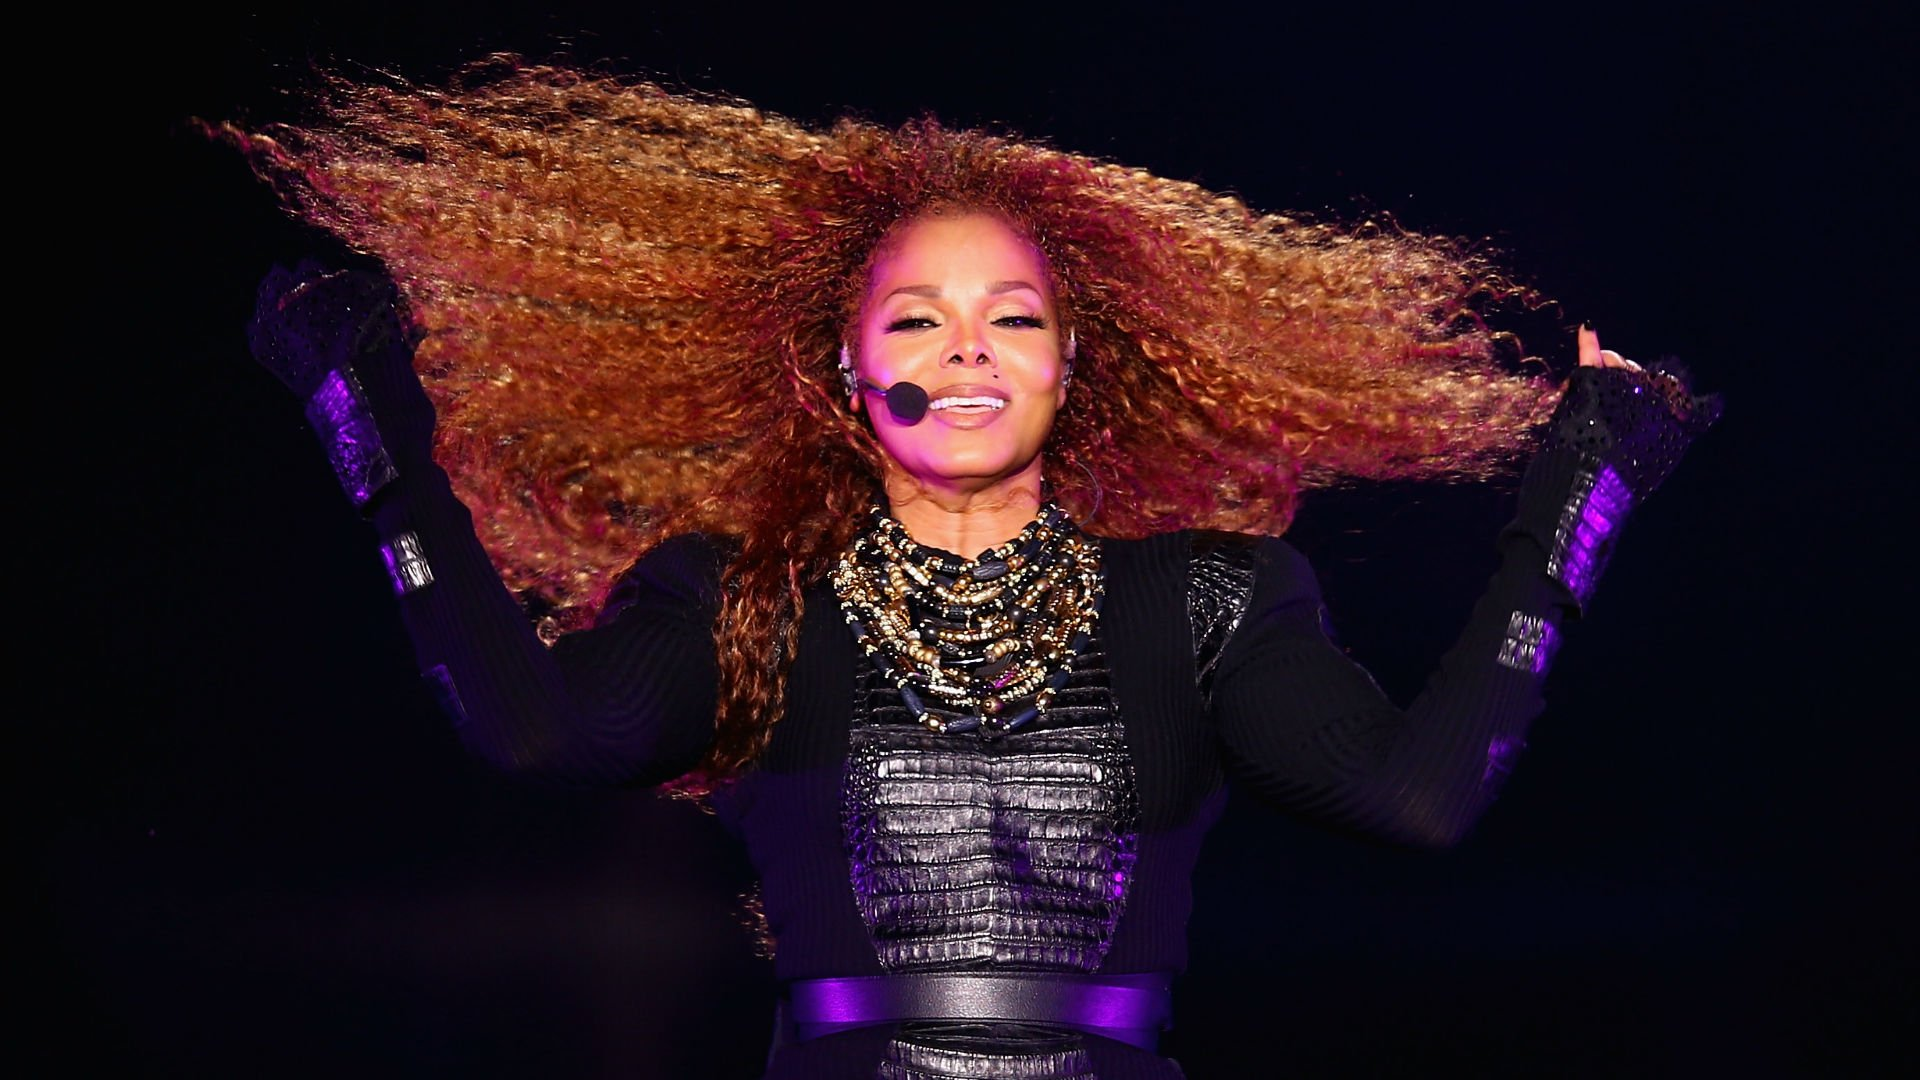 Janet Jackson Full HD Wallpaper And Background Image